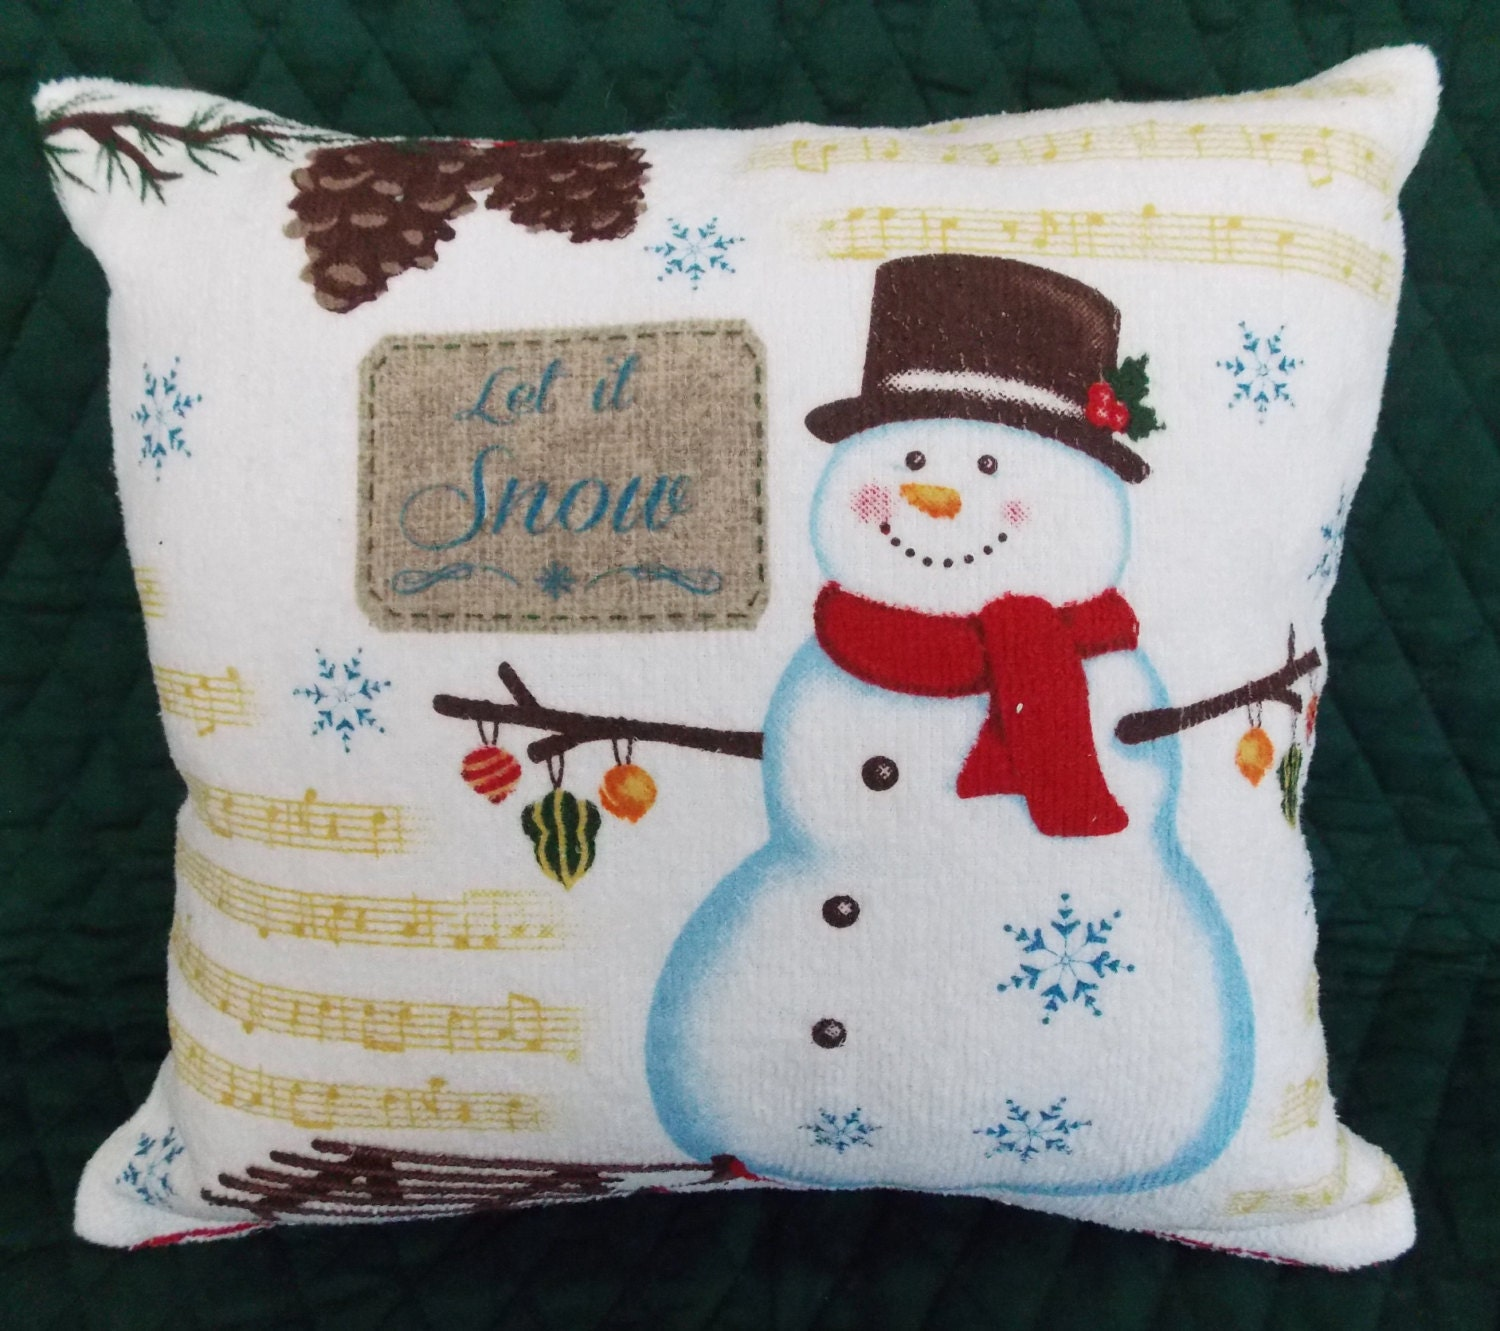 Snowman let it snow soft terry pillow approx